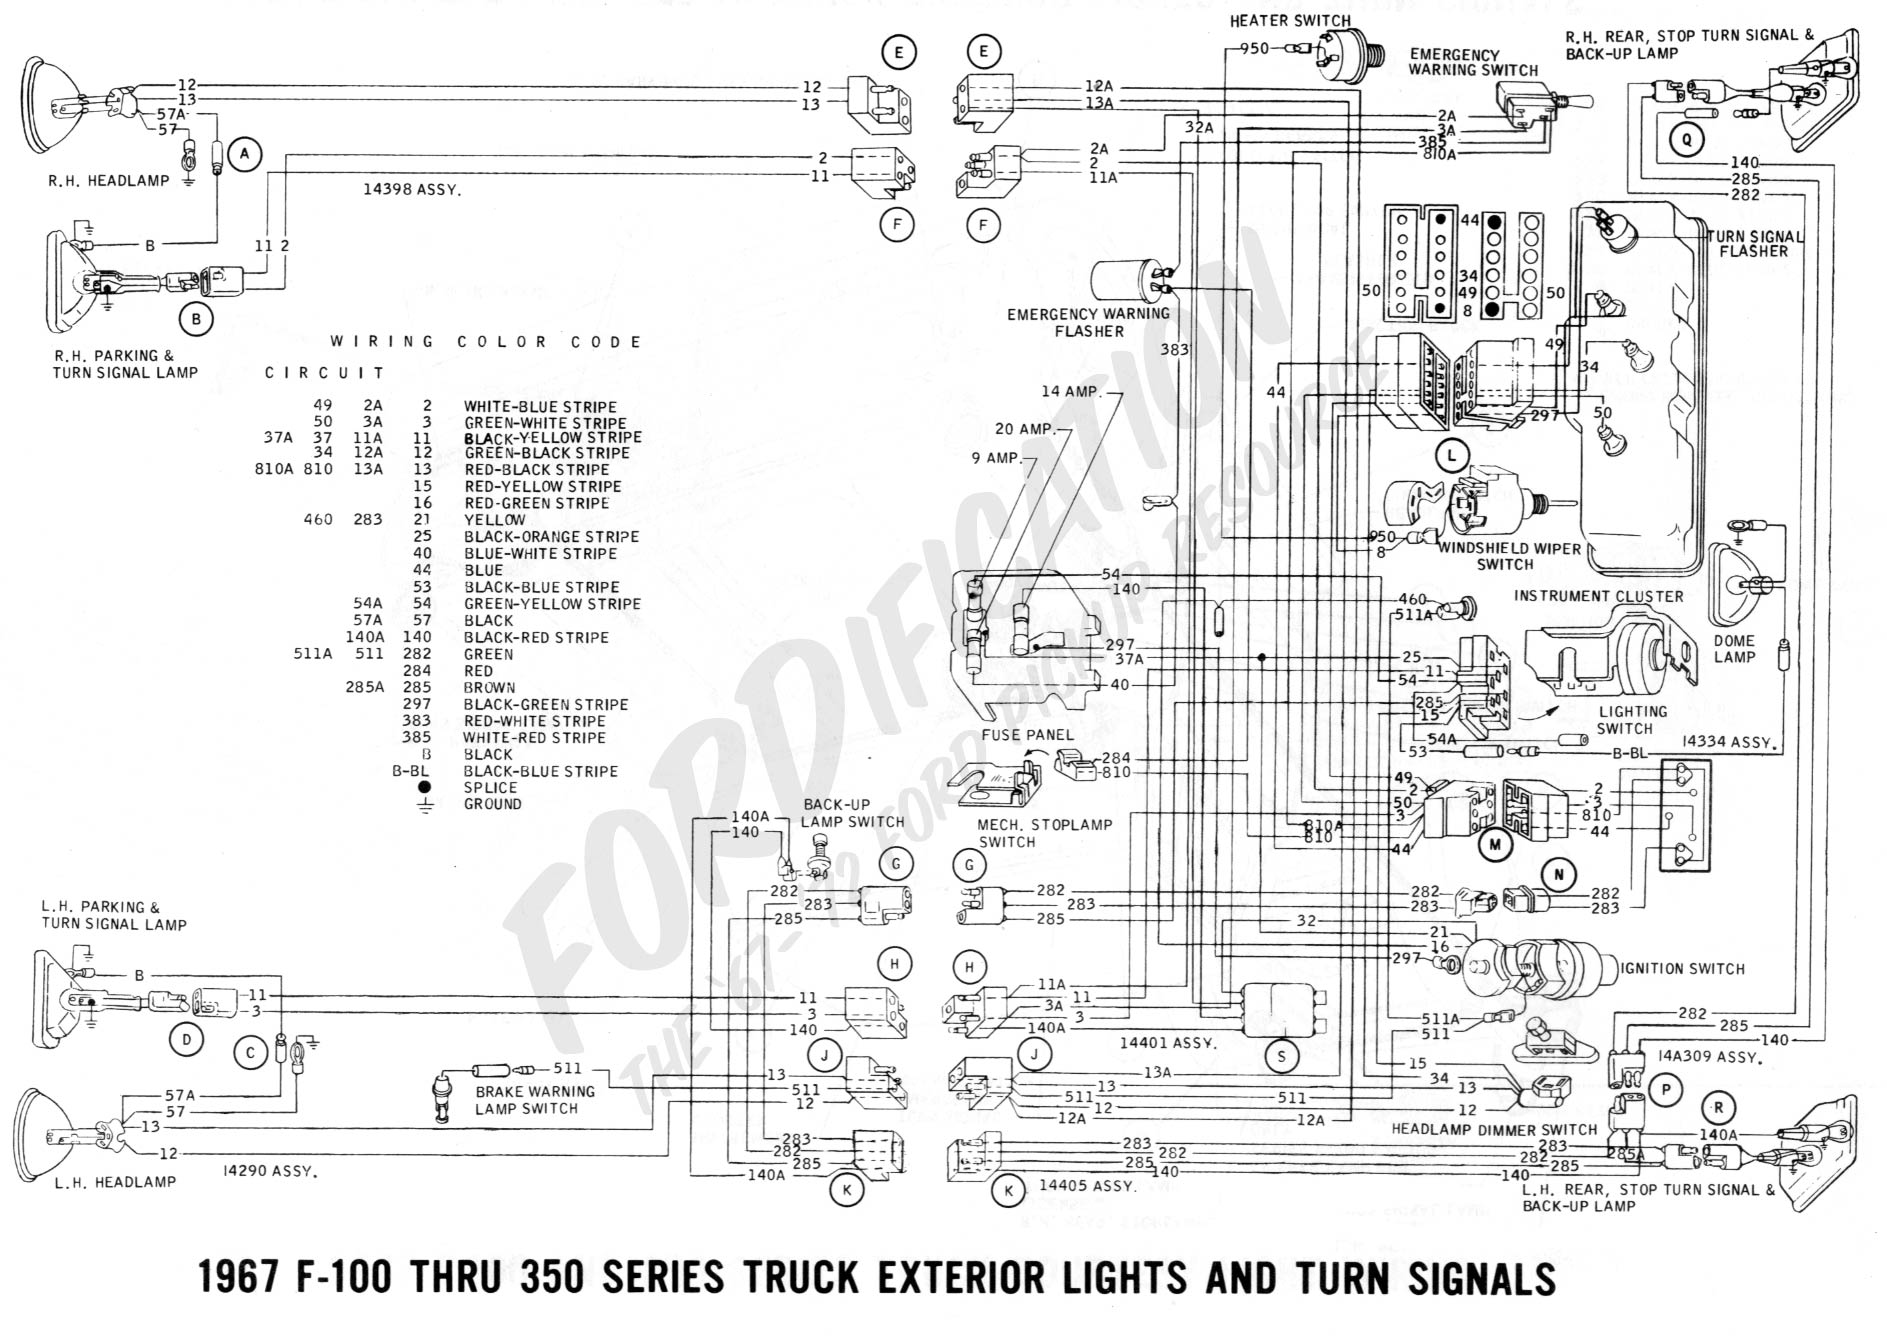 1997 Ford Mustang Wiring Schematic Car Diagrams Explained 12 Pin Trailer Plug Diagram Furthermore F100 3 Flasher Relay Rh Linxglobal Co Electronic Ignition